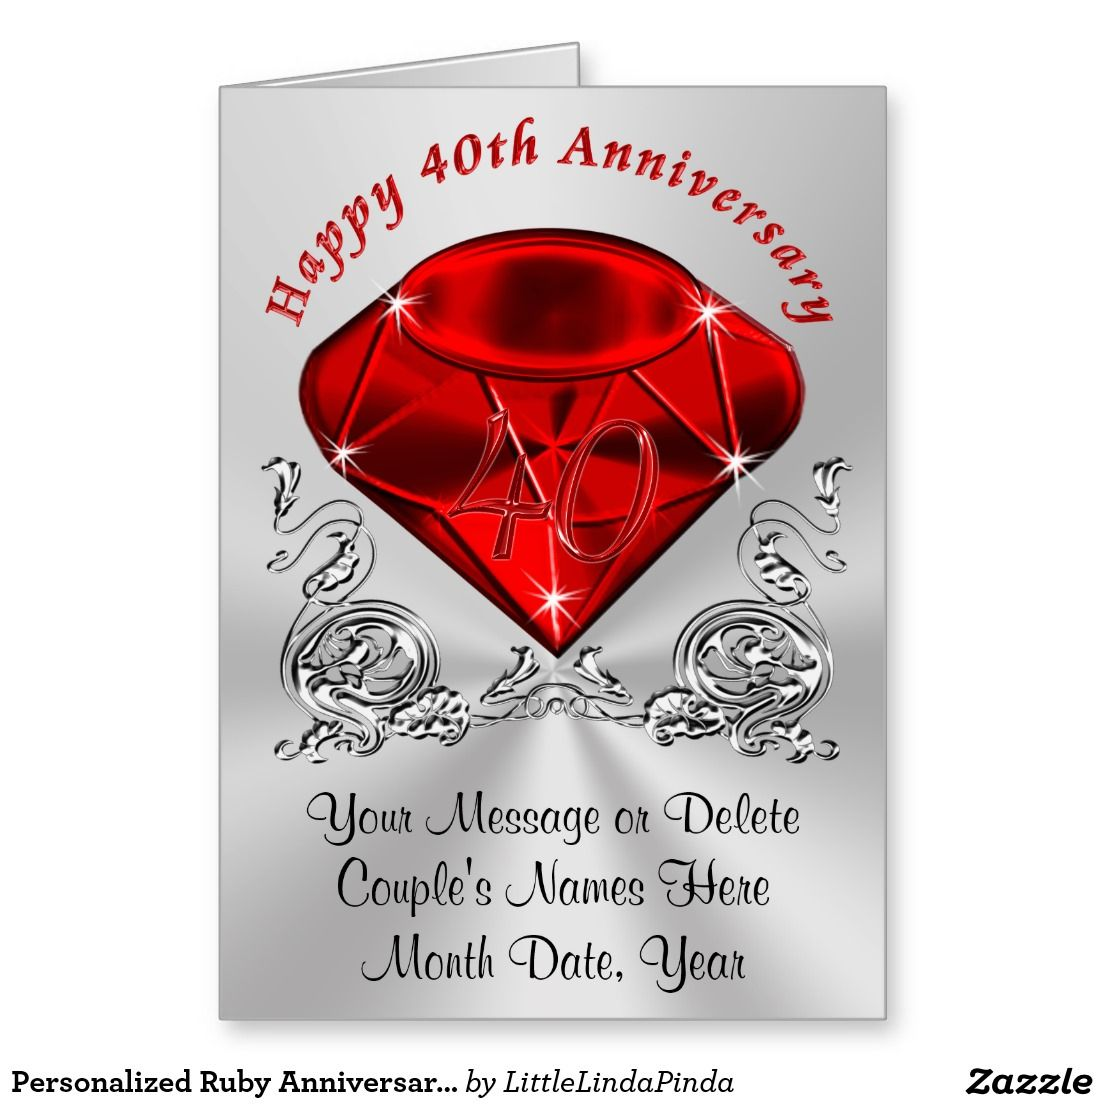 Personalized With Your Names And Message Ruby Wedding Anniversary Card For You Wife Husband